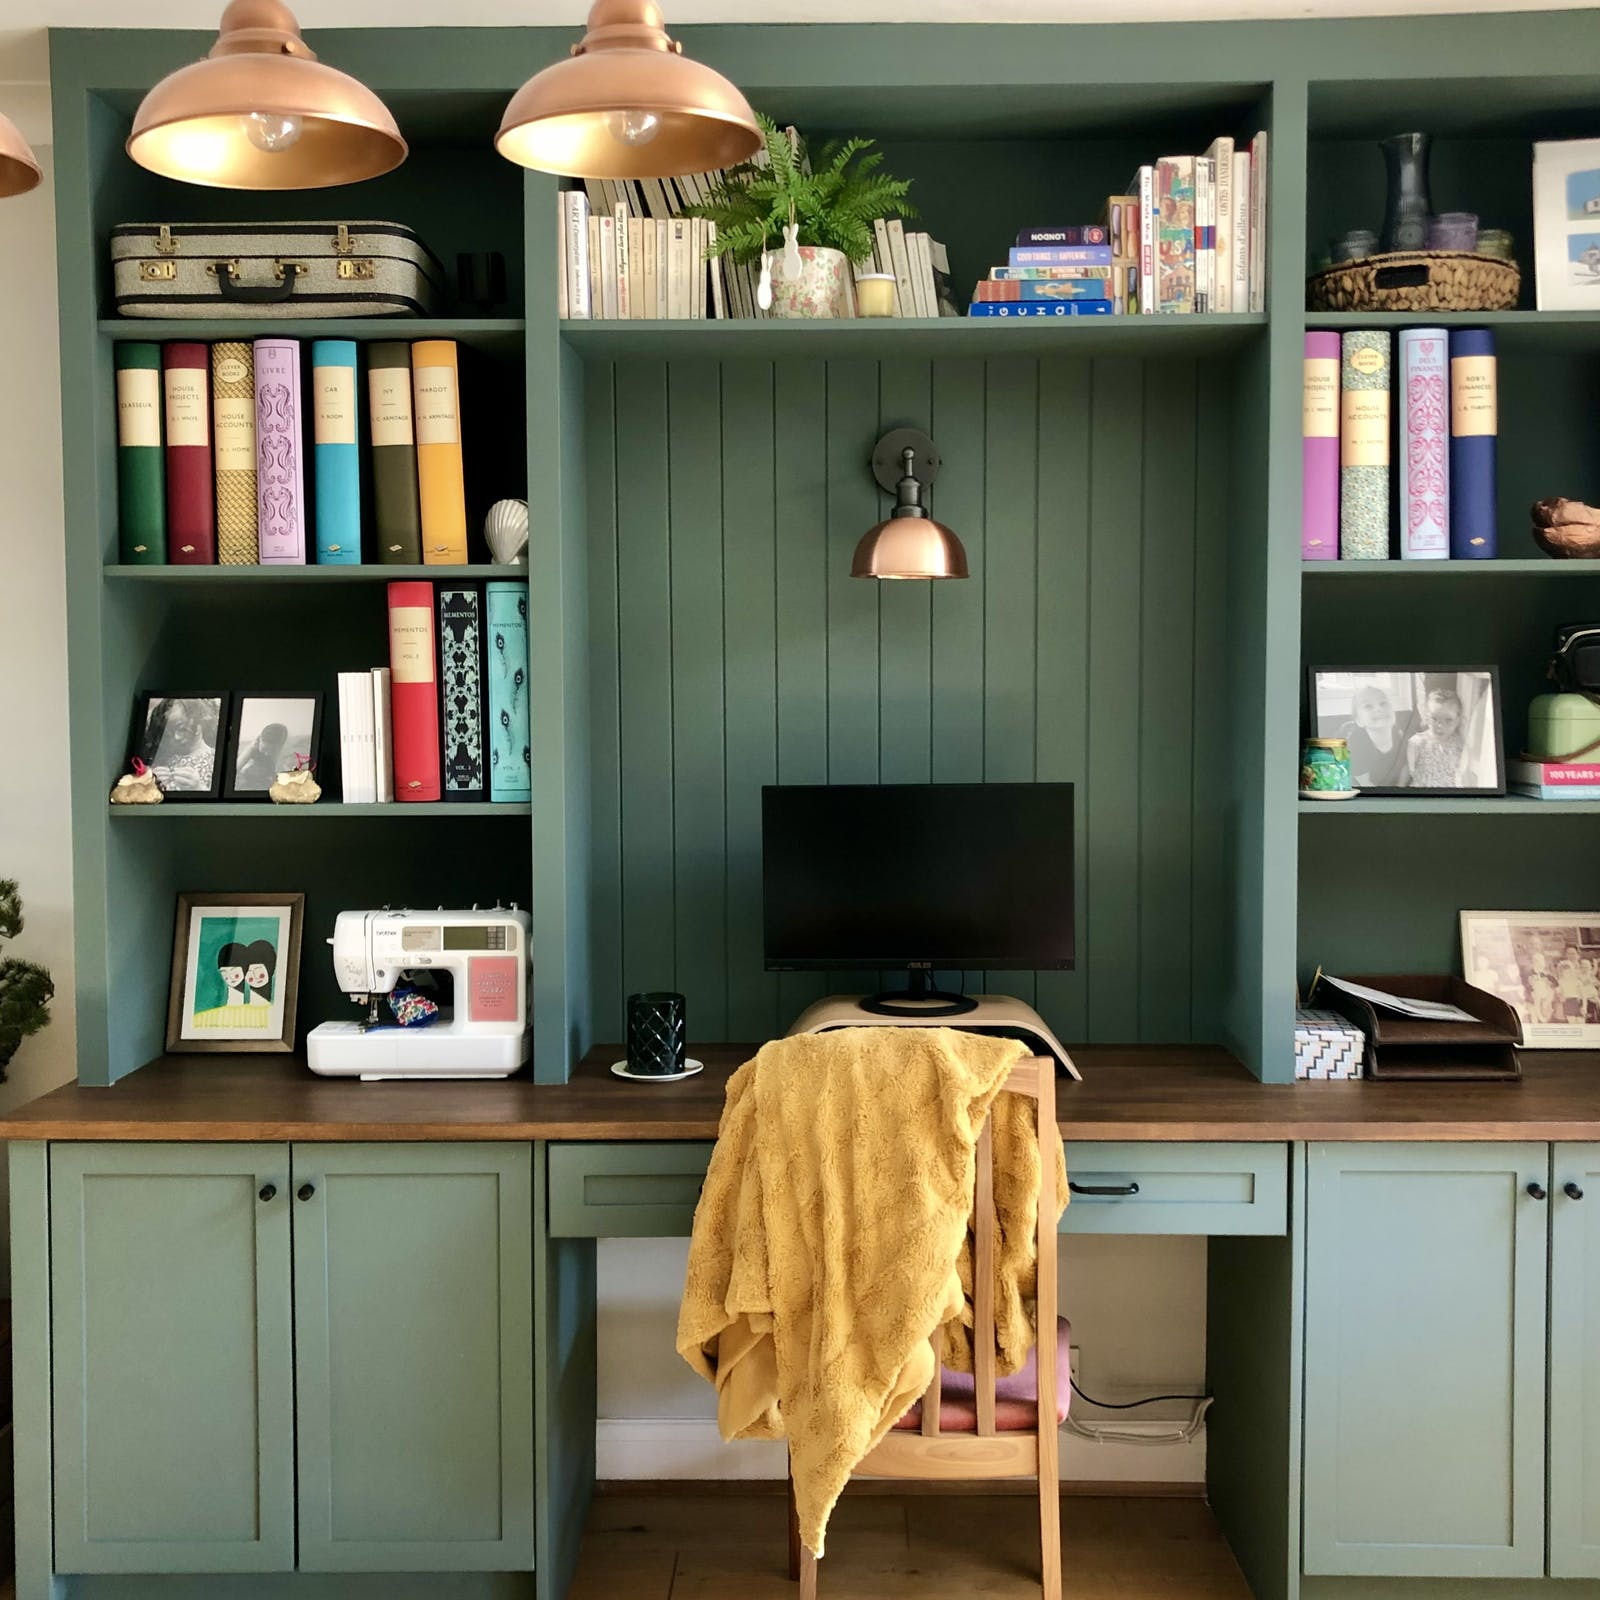 Office space bookshelves painted in Green 03